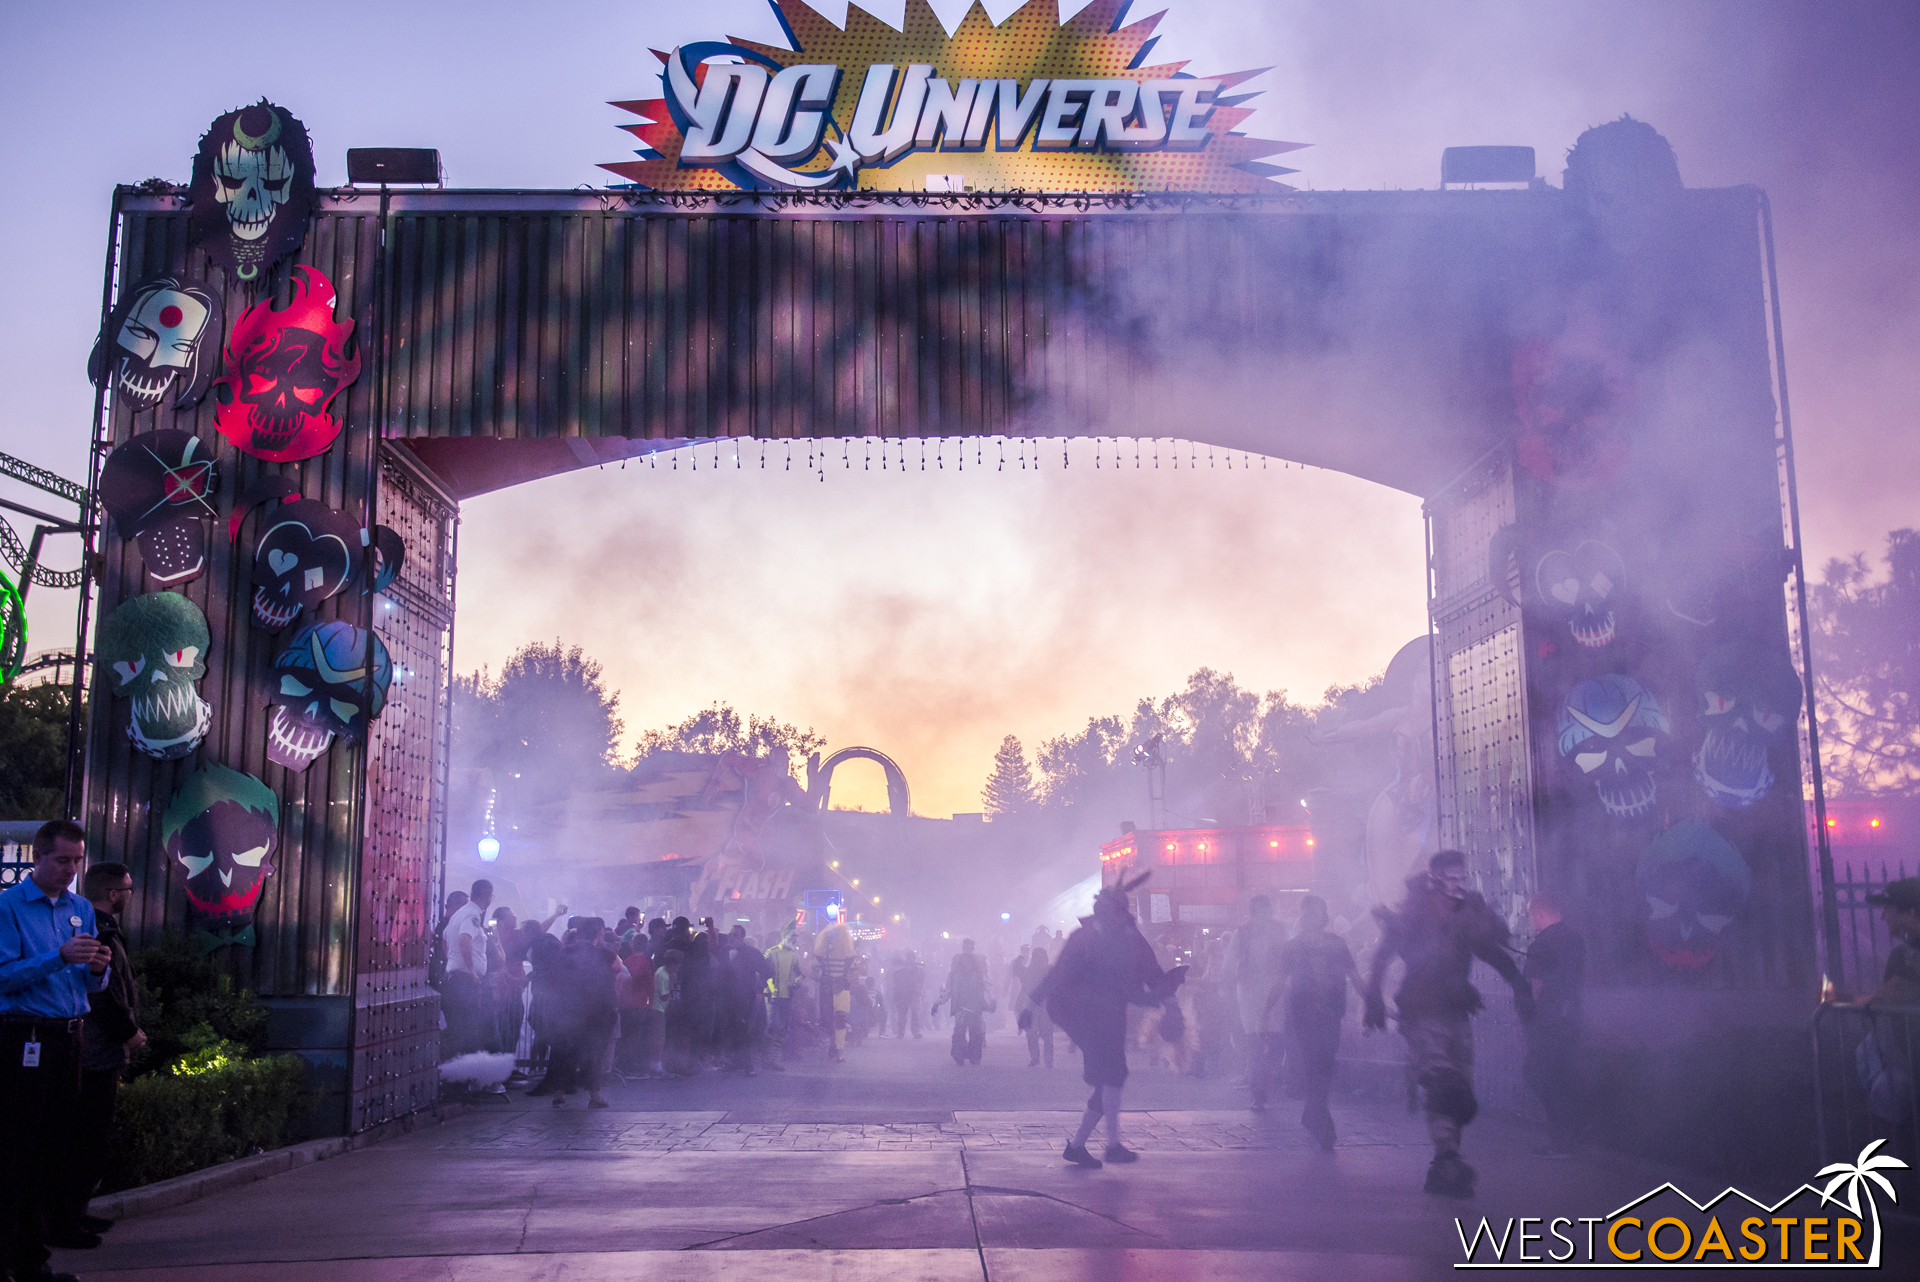 Fog billows as the monsters of Fright Fest come out to play.